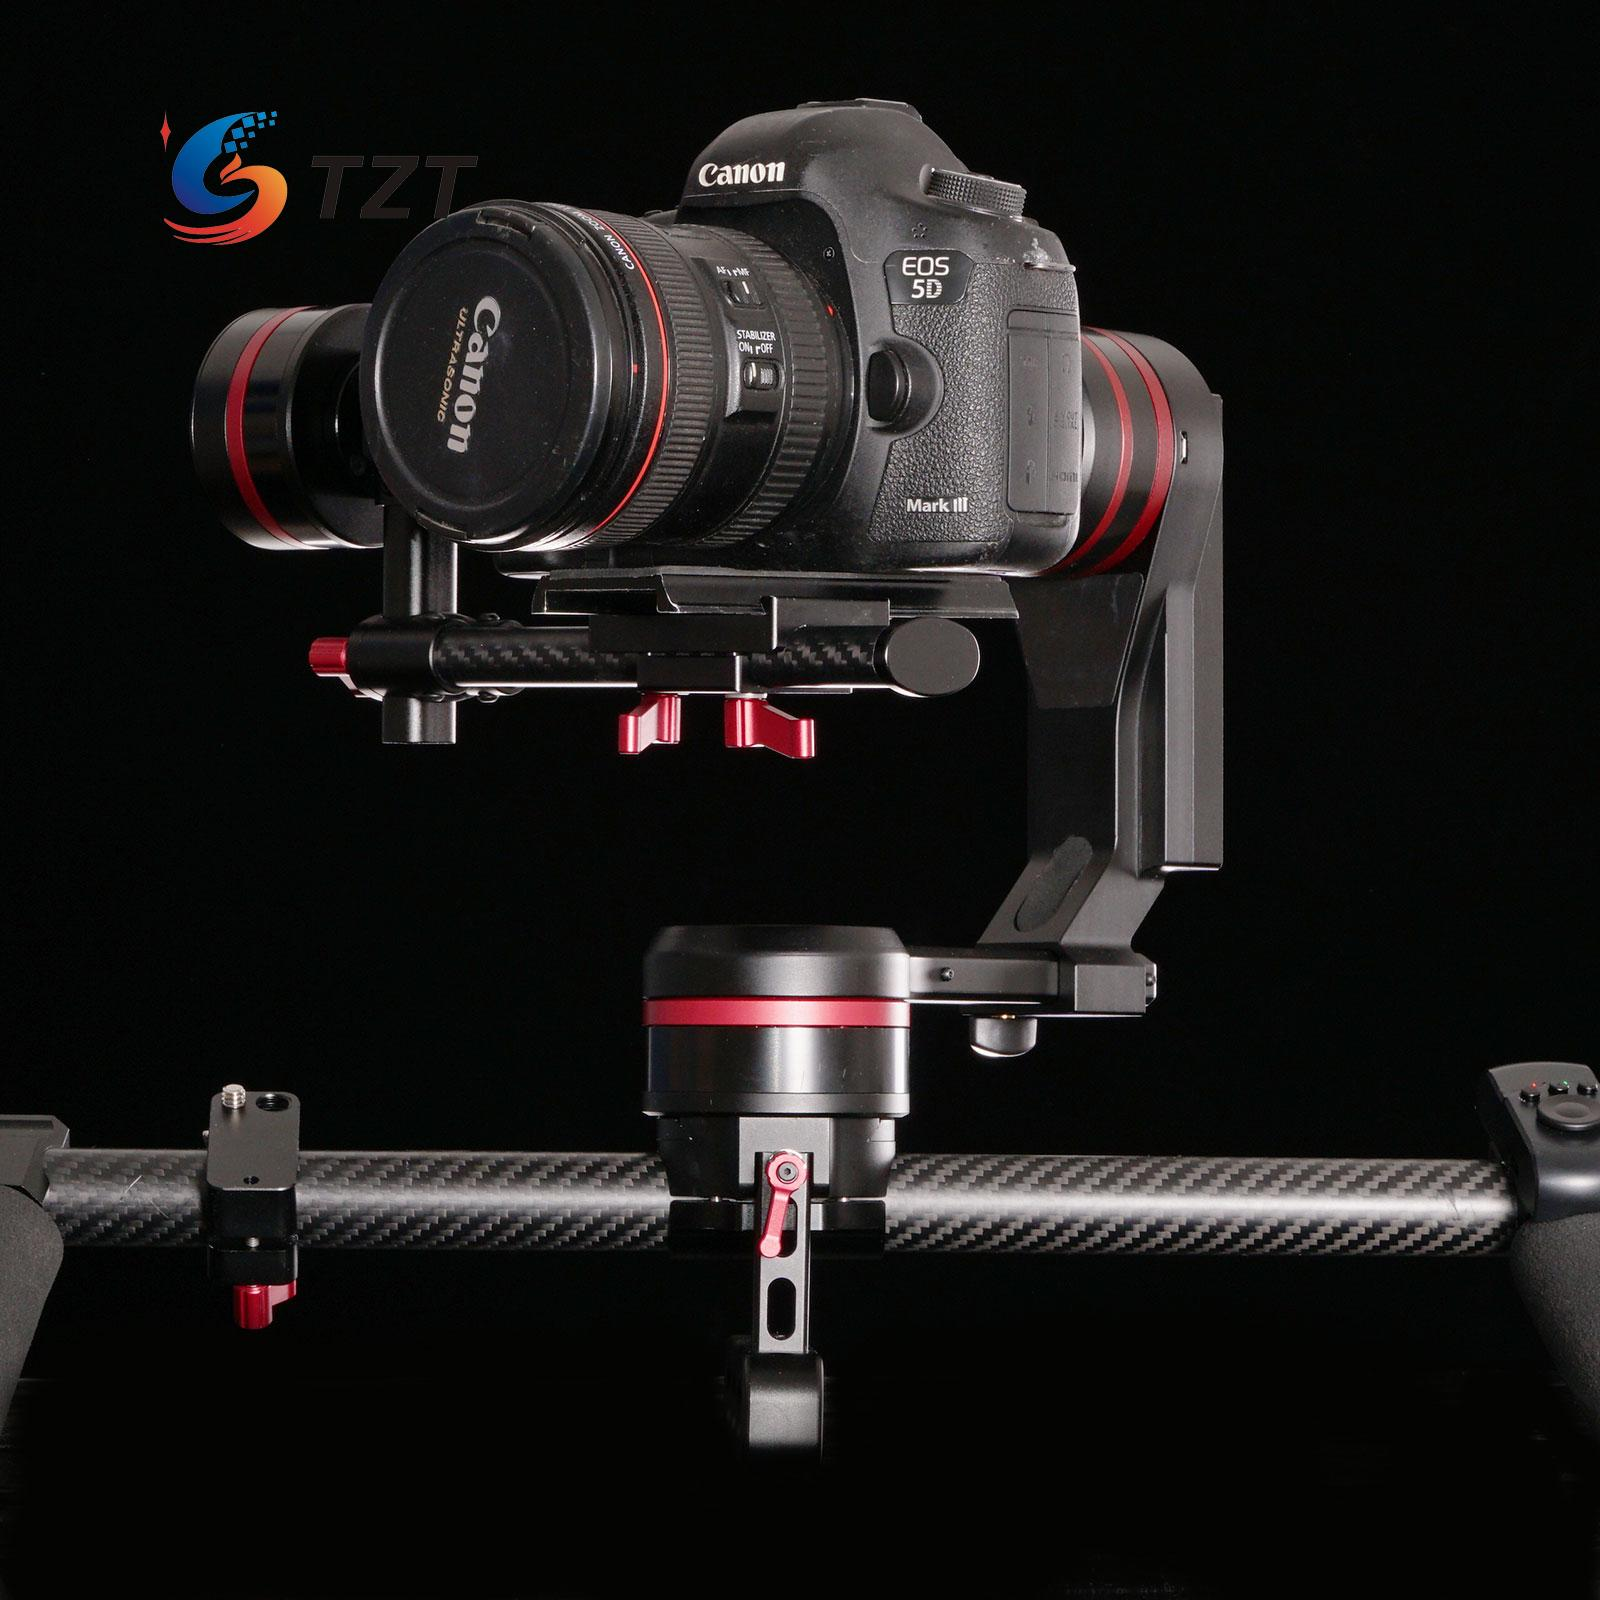 Handheld Gimbal 32bit Stabilizer 3 Axis Gyroscope for DSLR Camera 5D3 A7S R2 GH4 MD2